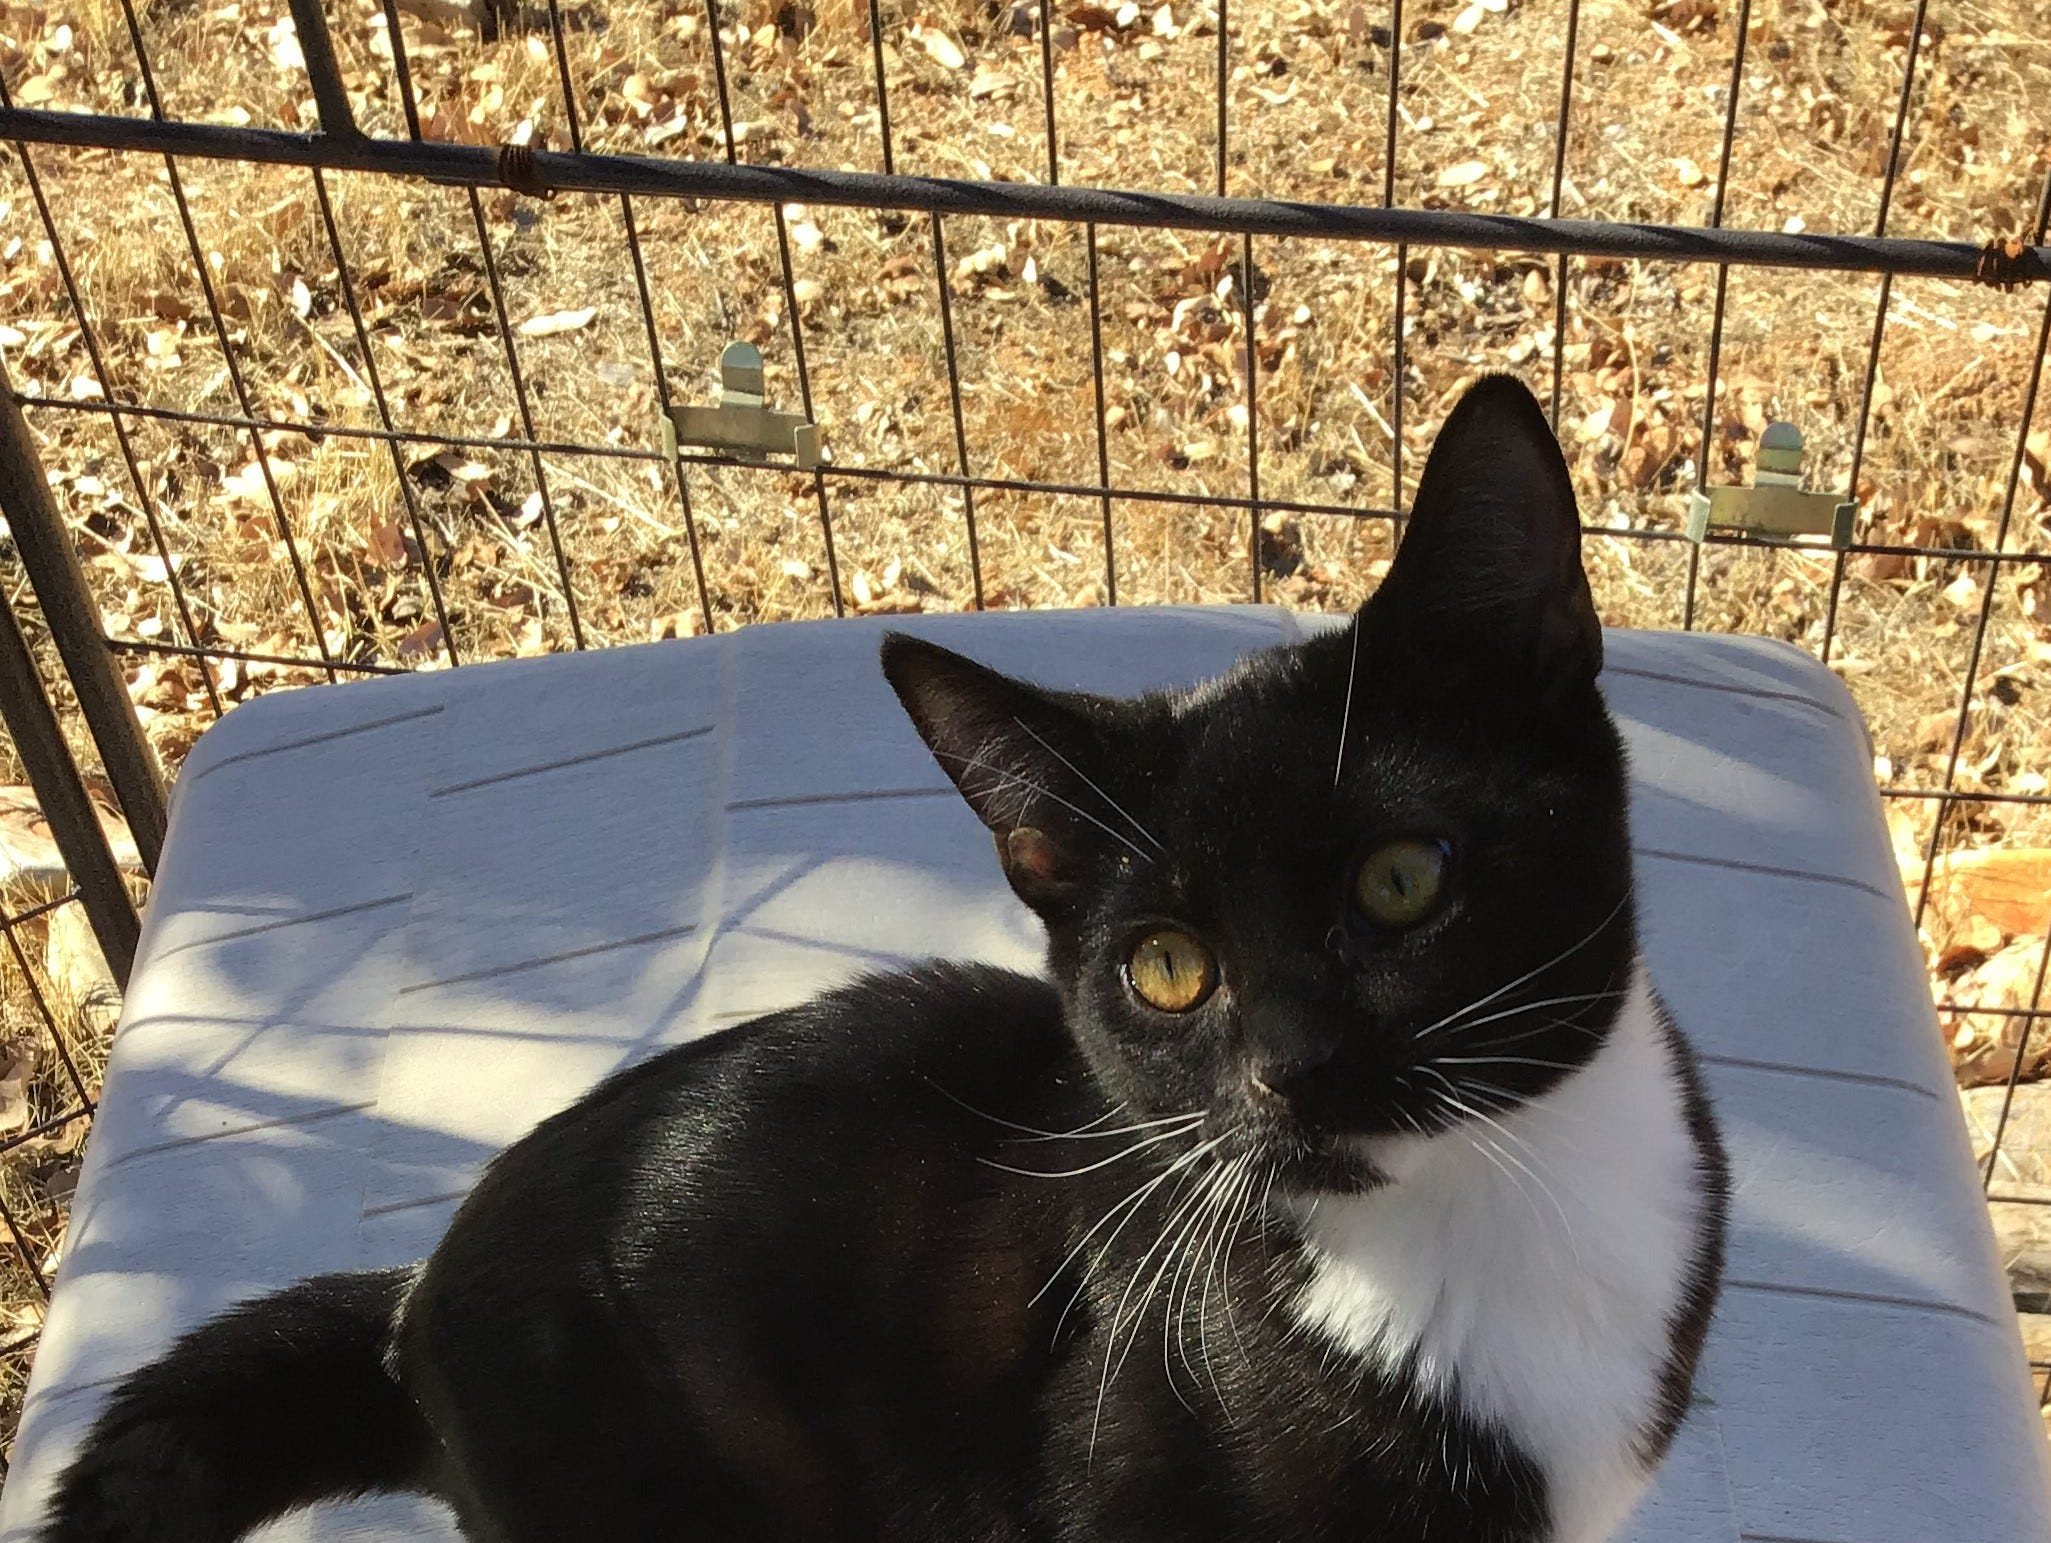 Macchiato is a 5-month-old, friendly and playful female kitten. She has siblings who are also up for adoption. Raining Cats N Dogs adoptions include spay/neuter services, vaccines and vetting as needed. Call 232-6299. Go to http://rainingcatsndogs.rescuegroups.org.